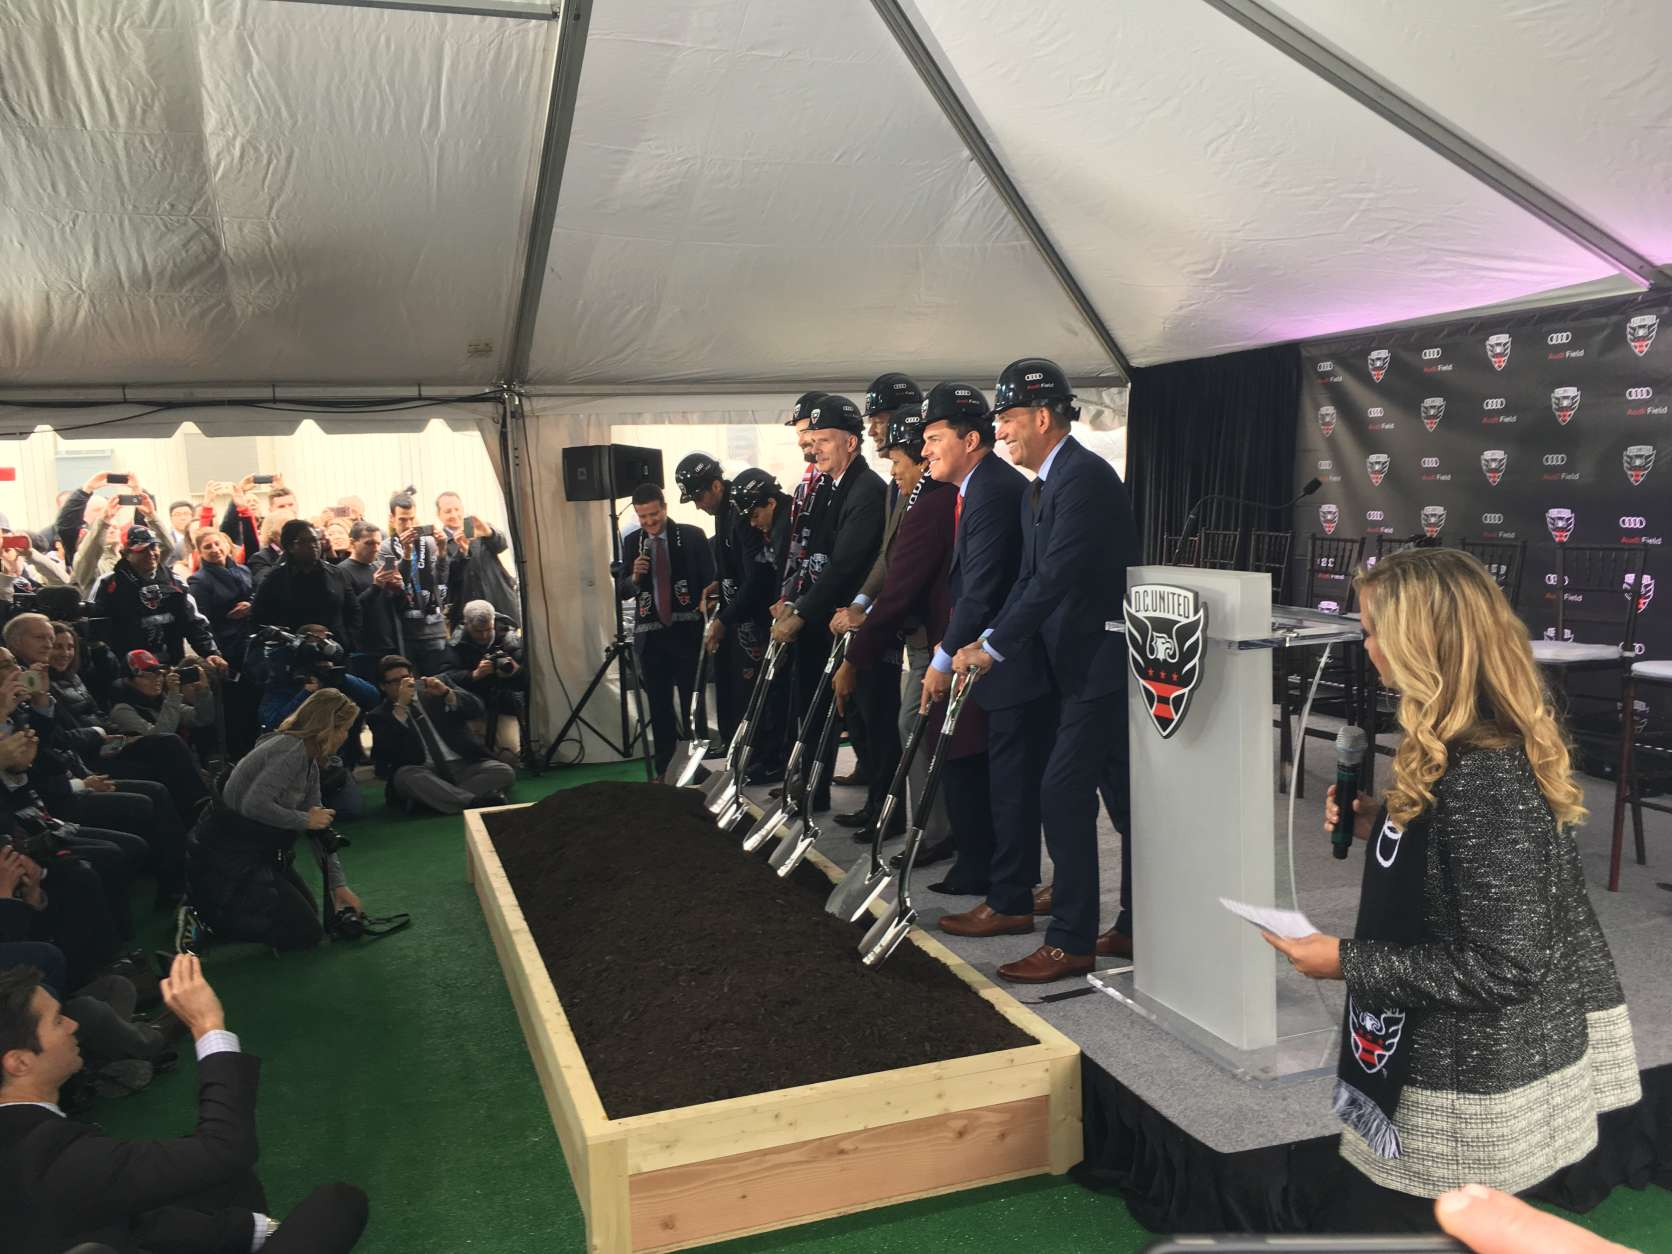 Representatives from D.C. government, D.C. United and Audi break ground on the team's future home. (WTOP/Noah Frank)